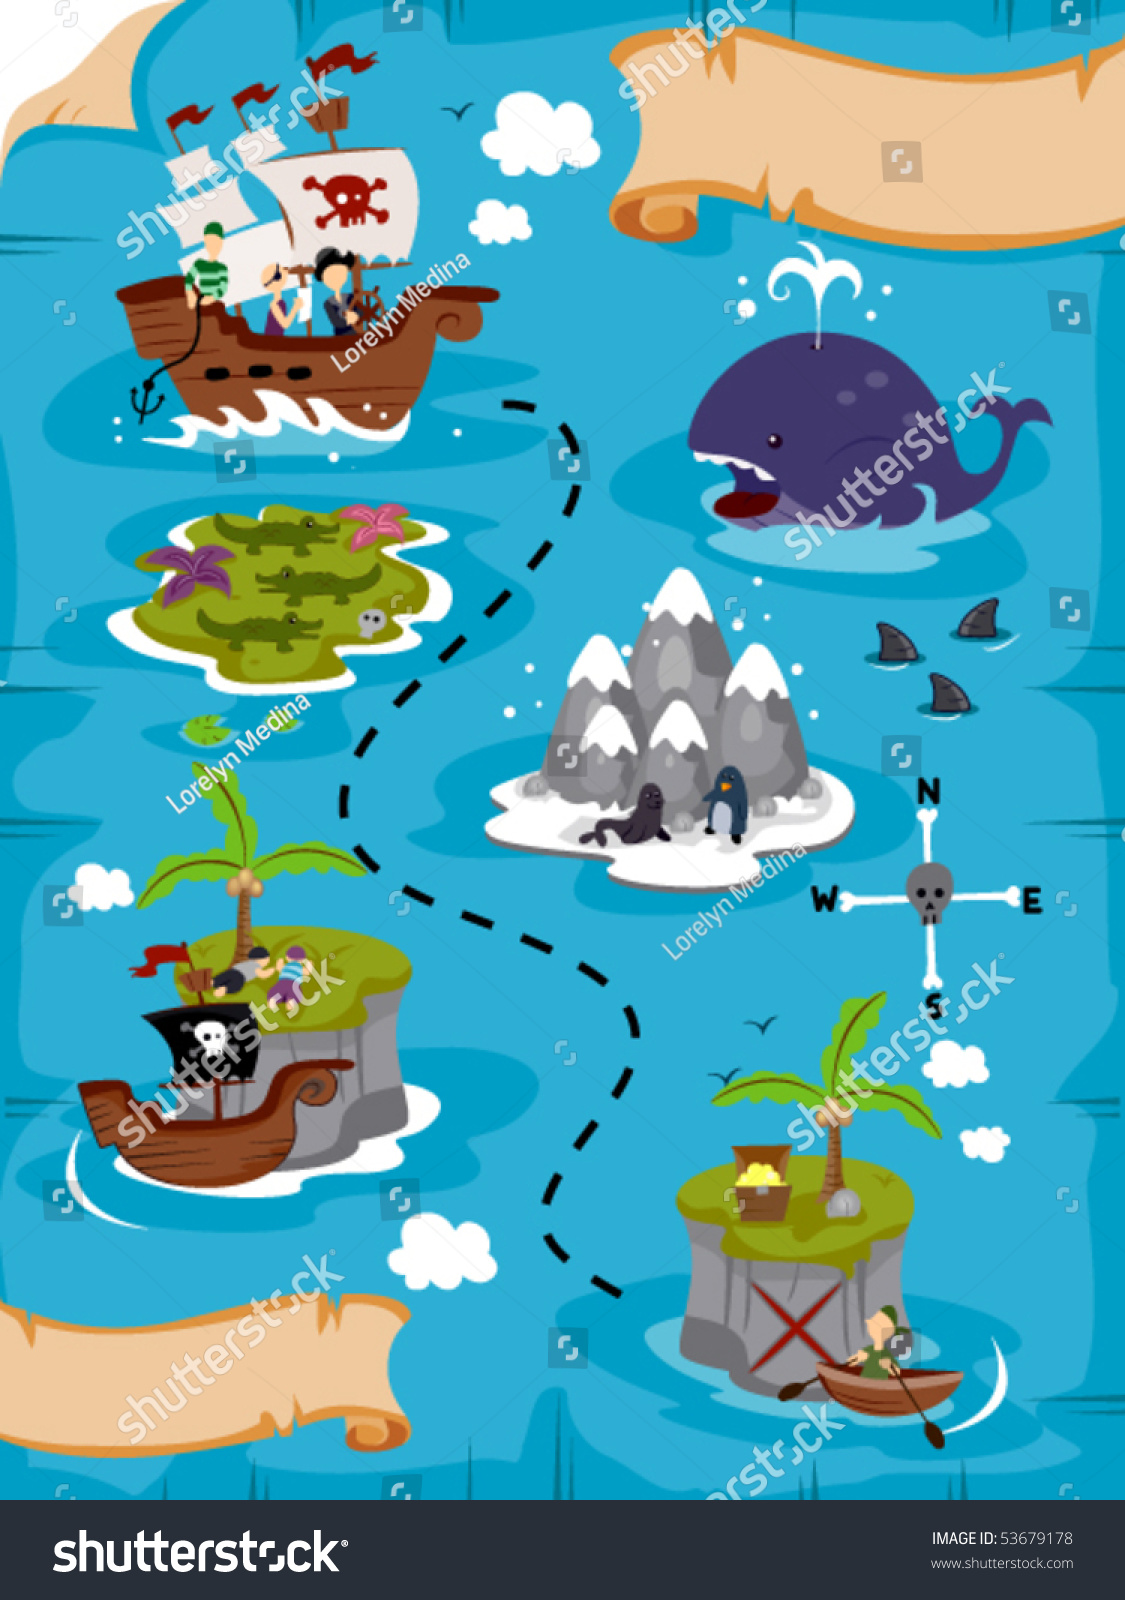 Treasure Map Vector Stock Vector 53679178 - Shutterstock